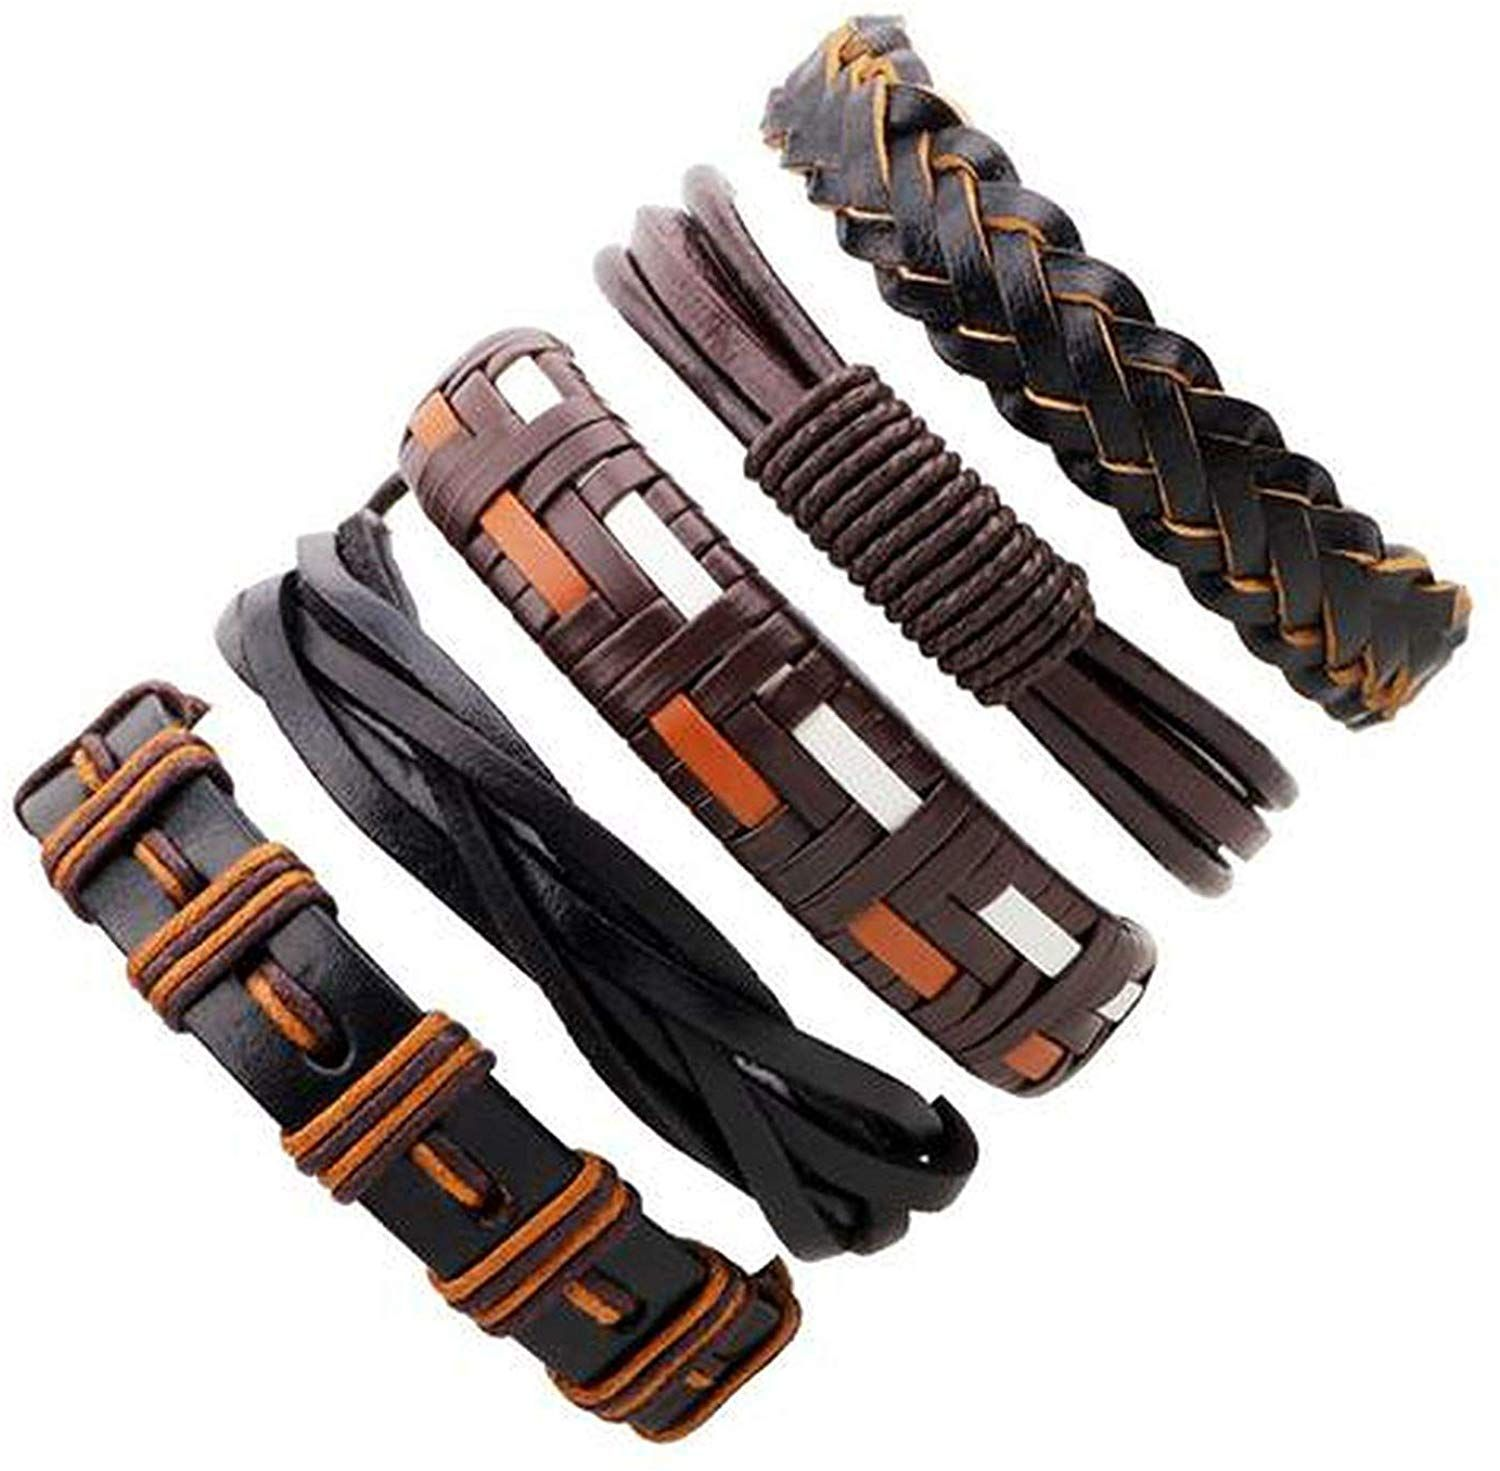 Photo of HOUBL Simple:Good 3-6 Pcs/Lot Tribal Genuine Wrap Male Pulsera Black Braided Leather Bracelets Bangles Color He did